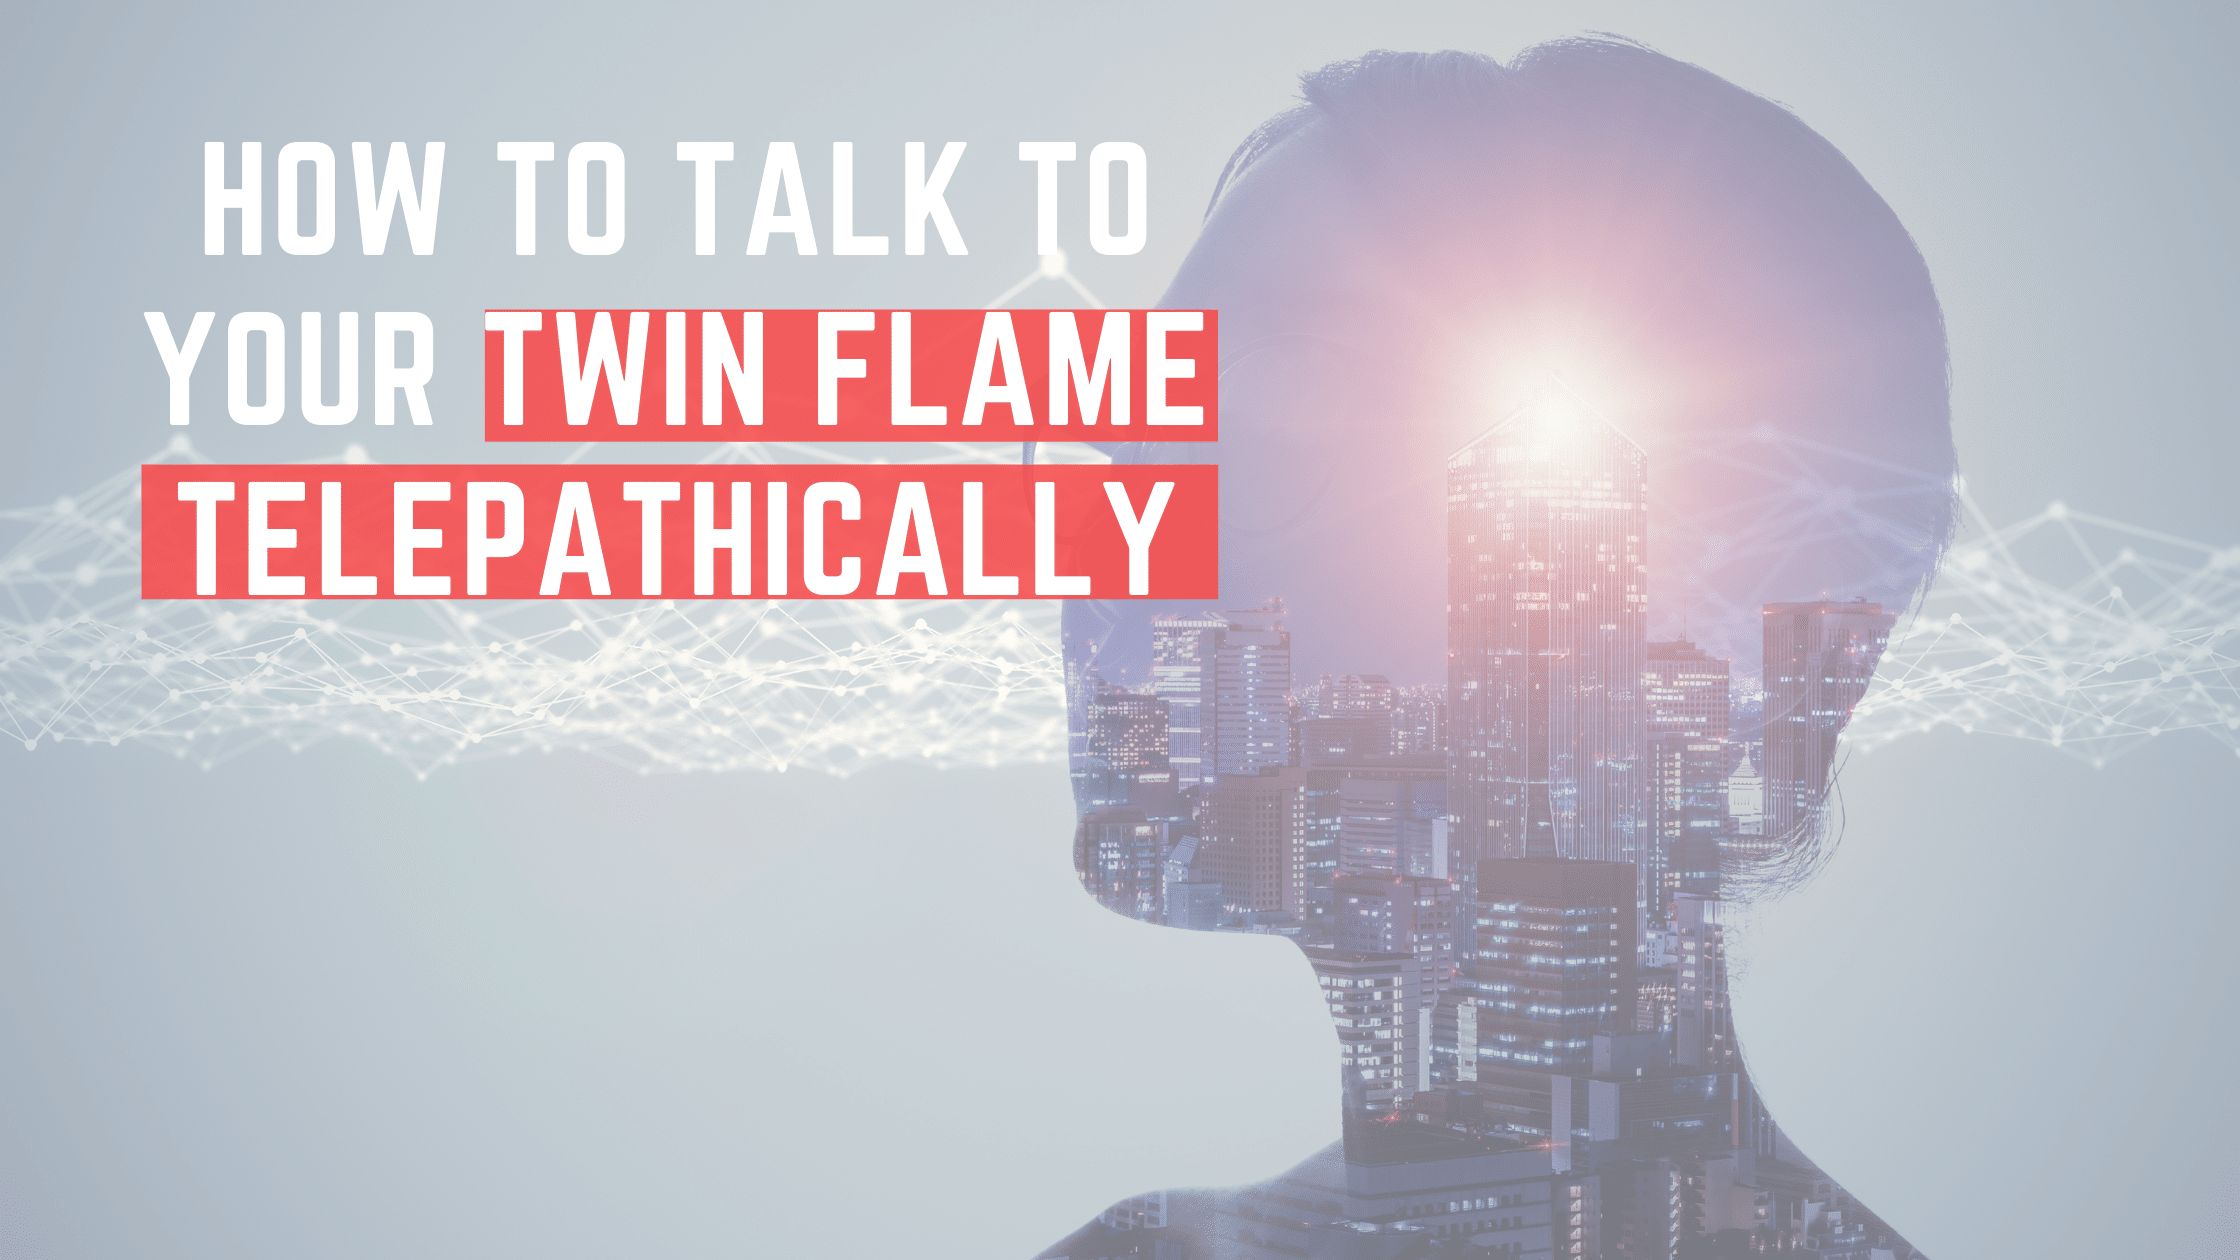 How to Talk to Your Twin Flame Telepathically